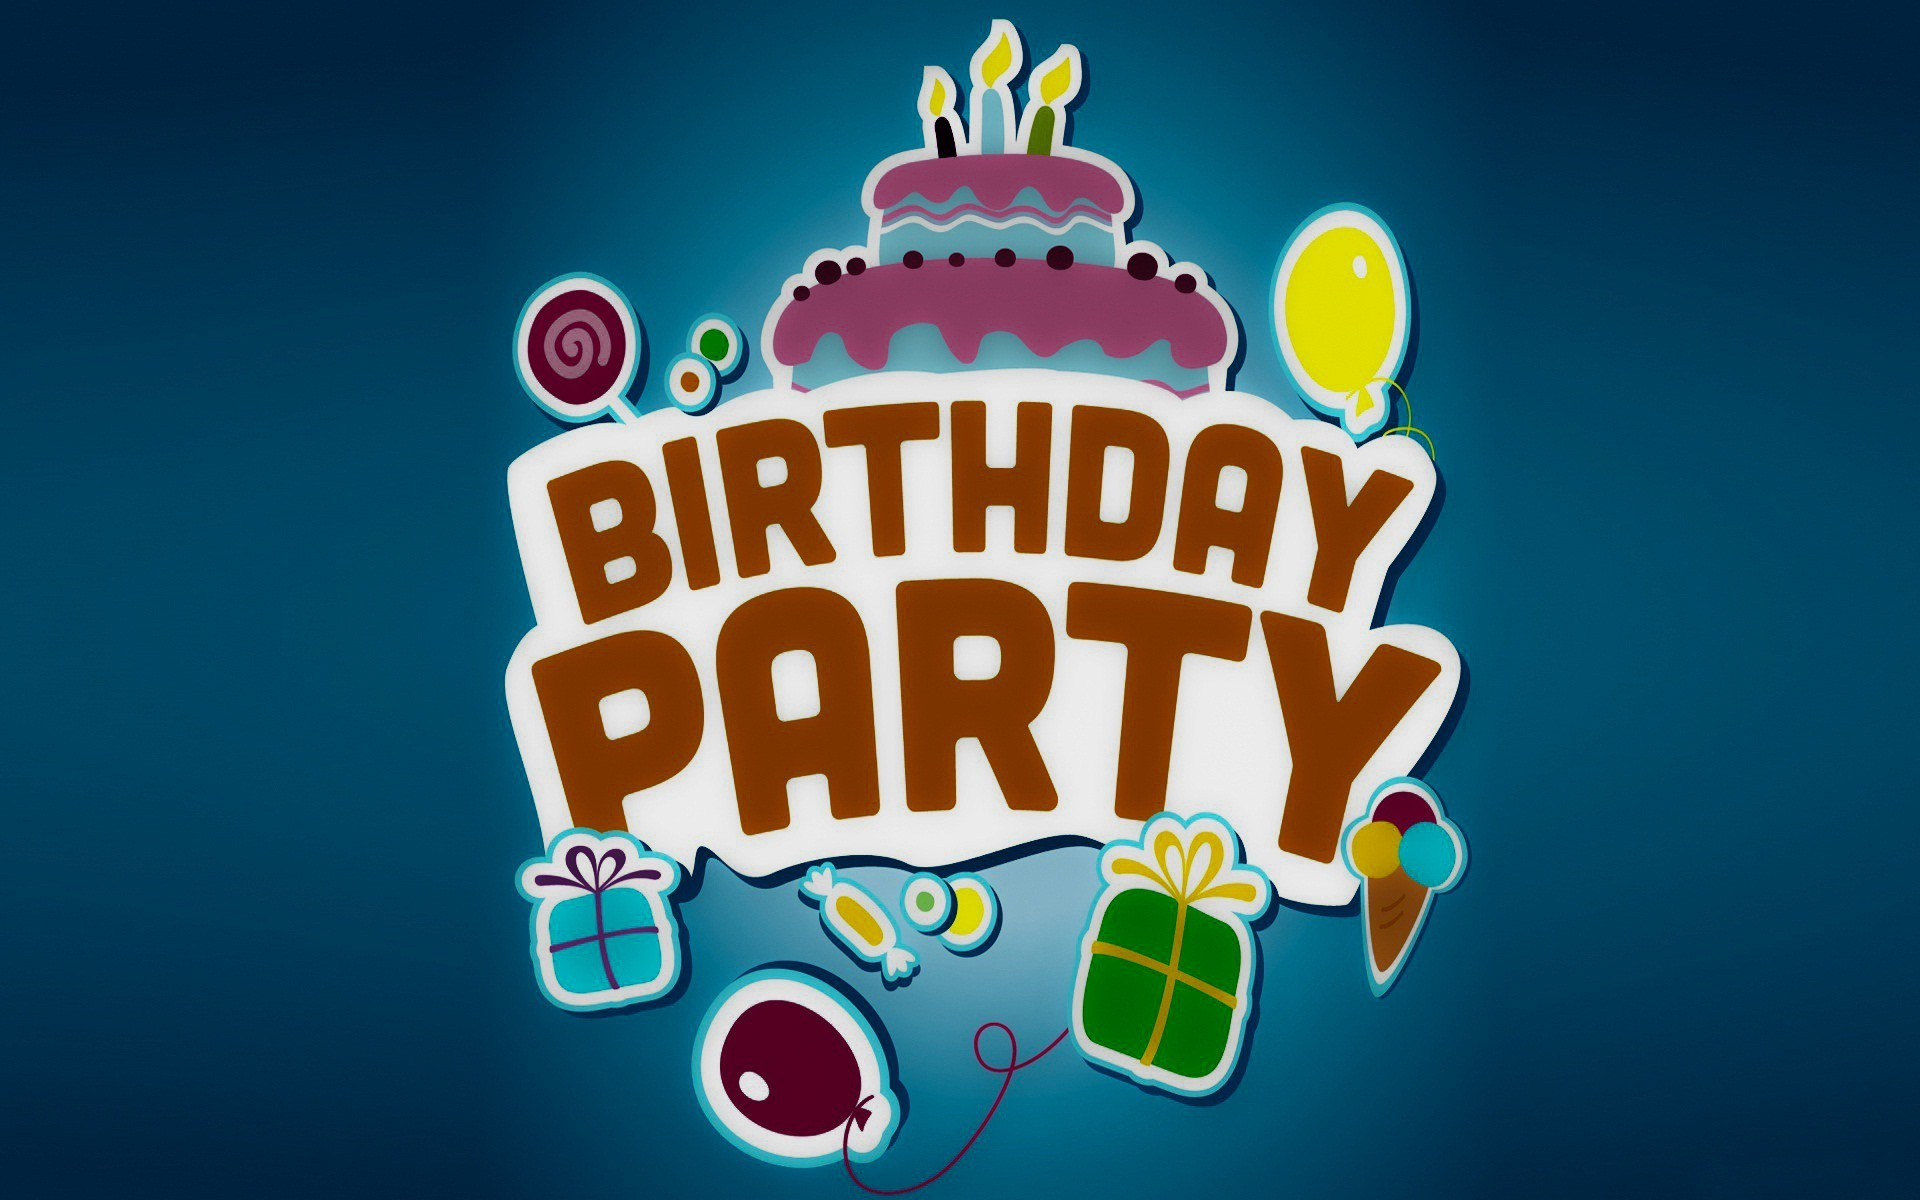 1920x1200 Birthday Party Wallpapers On Wallpaperplay